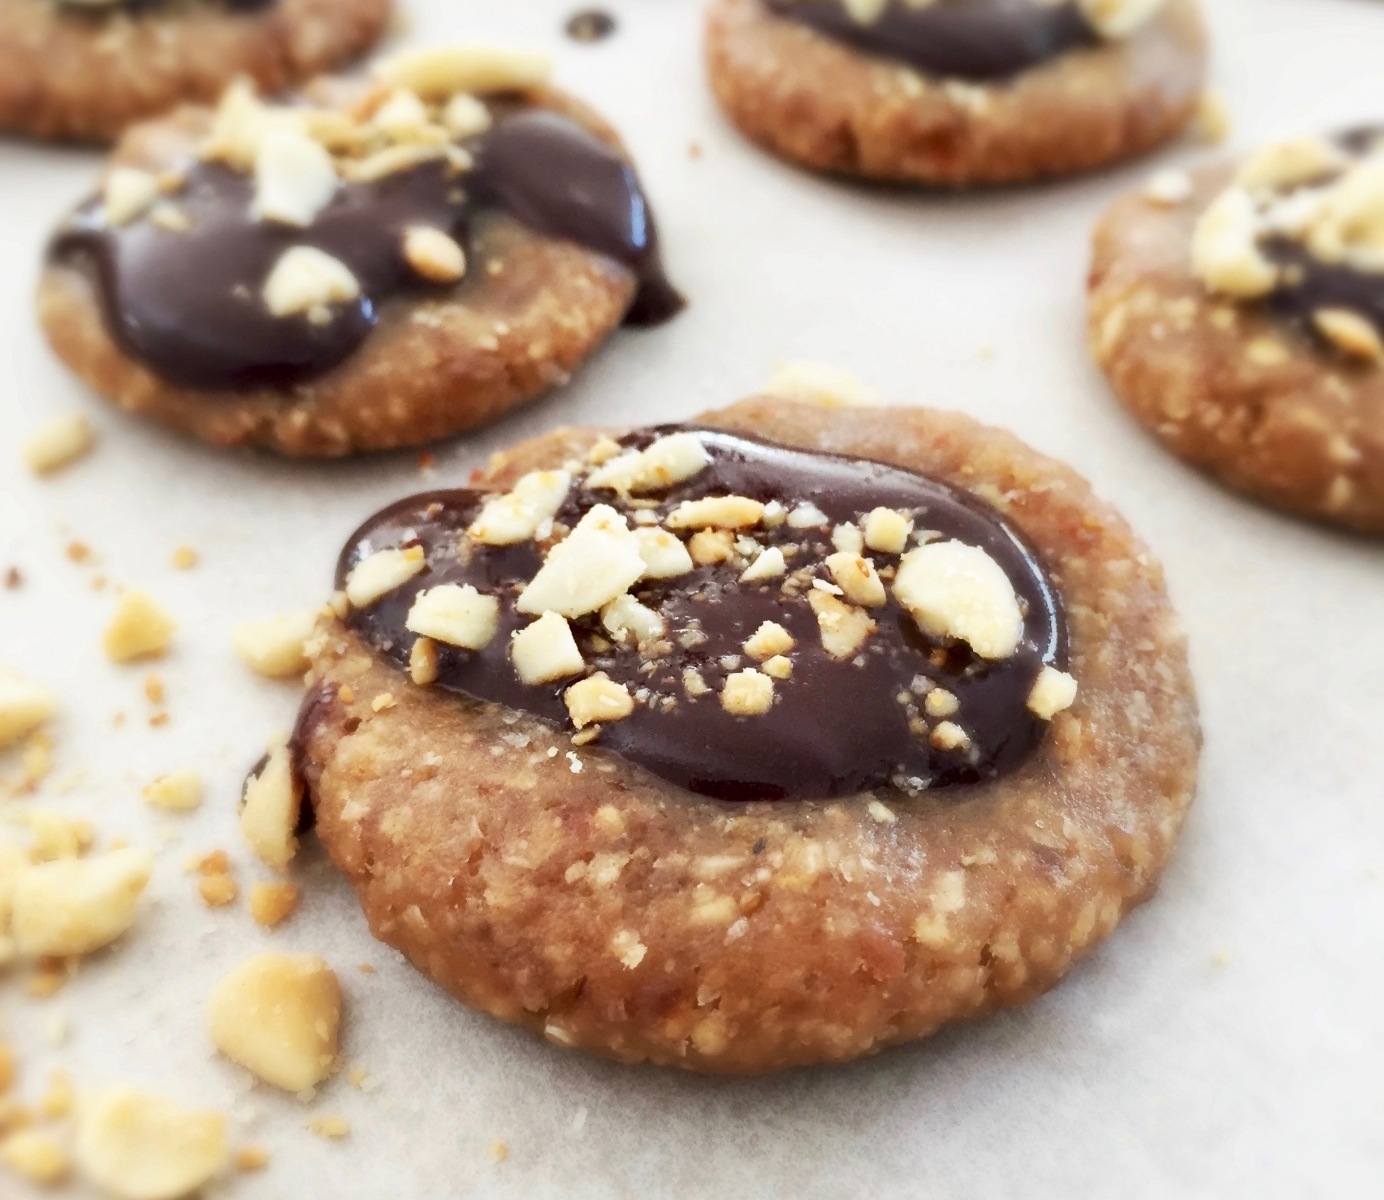 The Ultimate Vegan Keto Peanut Butter Cookies + Chocolate (low carb, sugar free, gluten free, paleo)